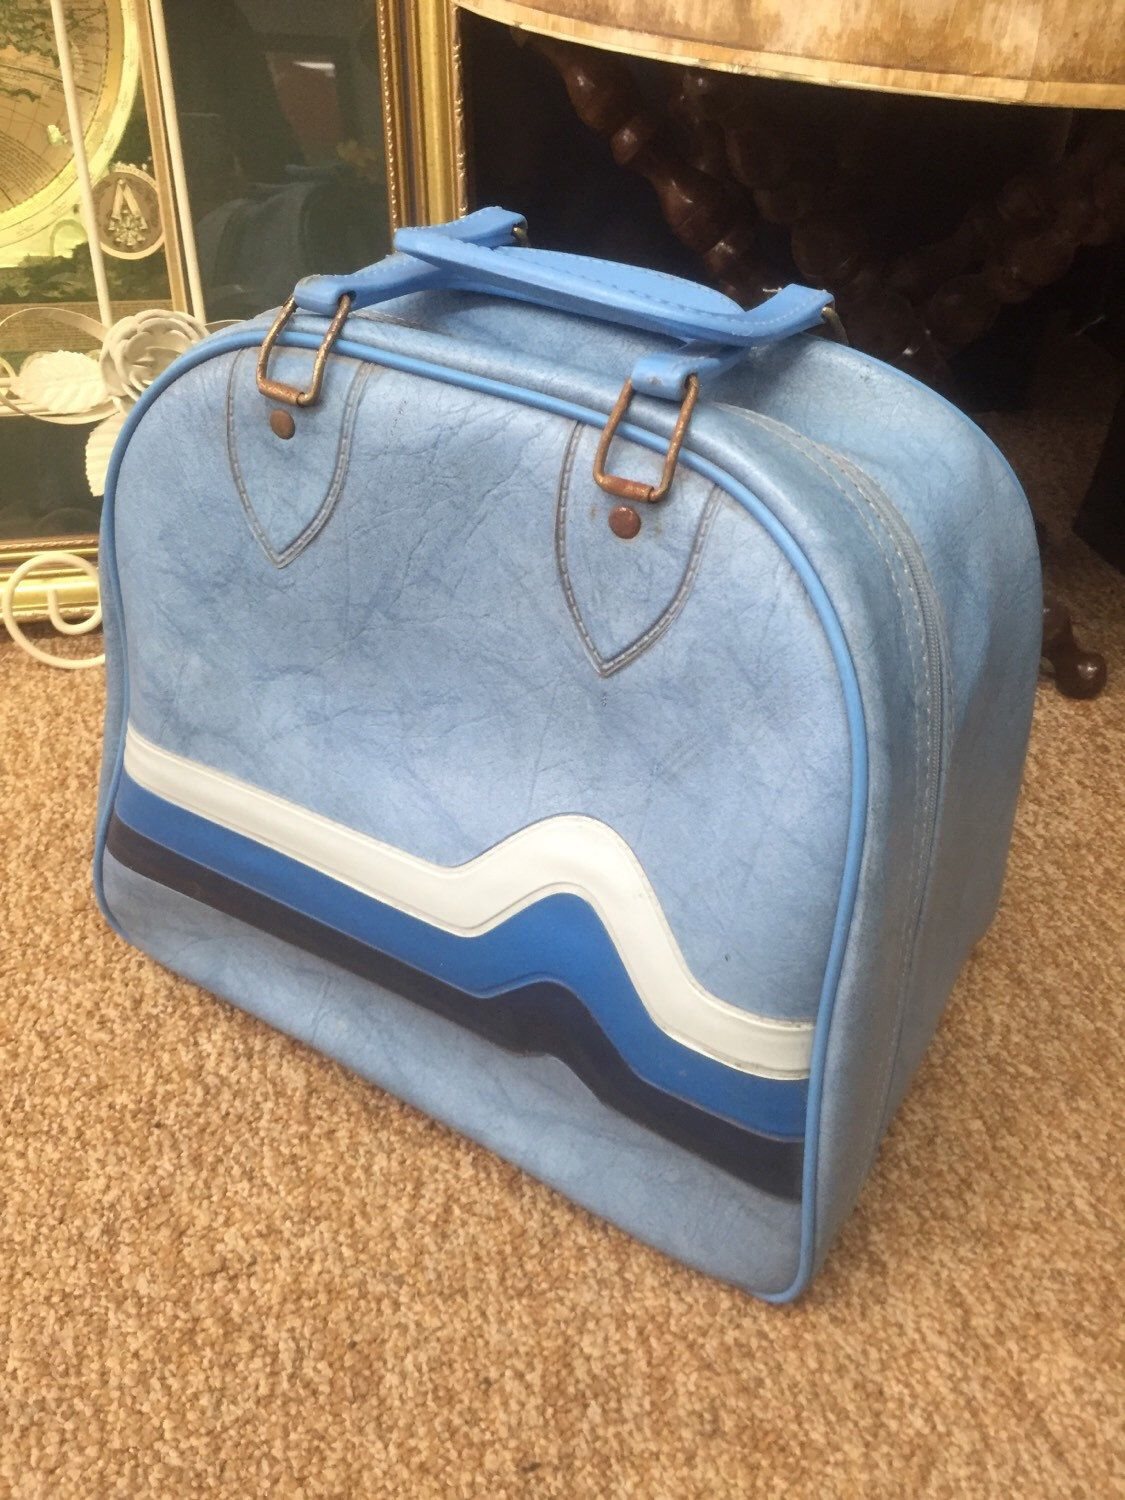 Blue vintage 70s bowling ball bag the dude style big lebowski  by RusticLoveShop on Etsy https://www.etsy.com/listing/231332699/blue-vintage-70s-bowling-ball-bag-the